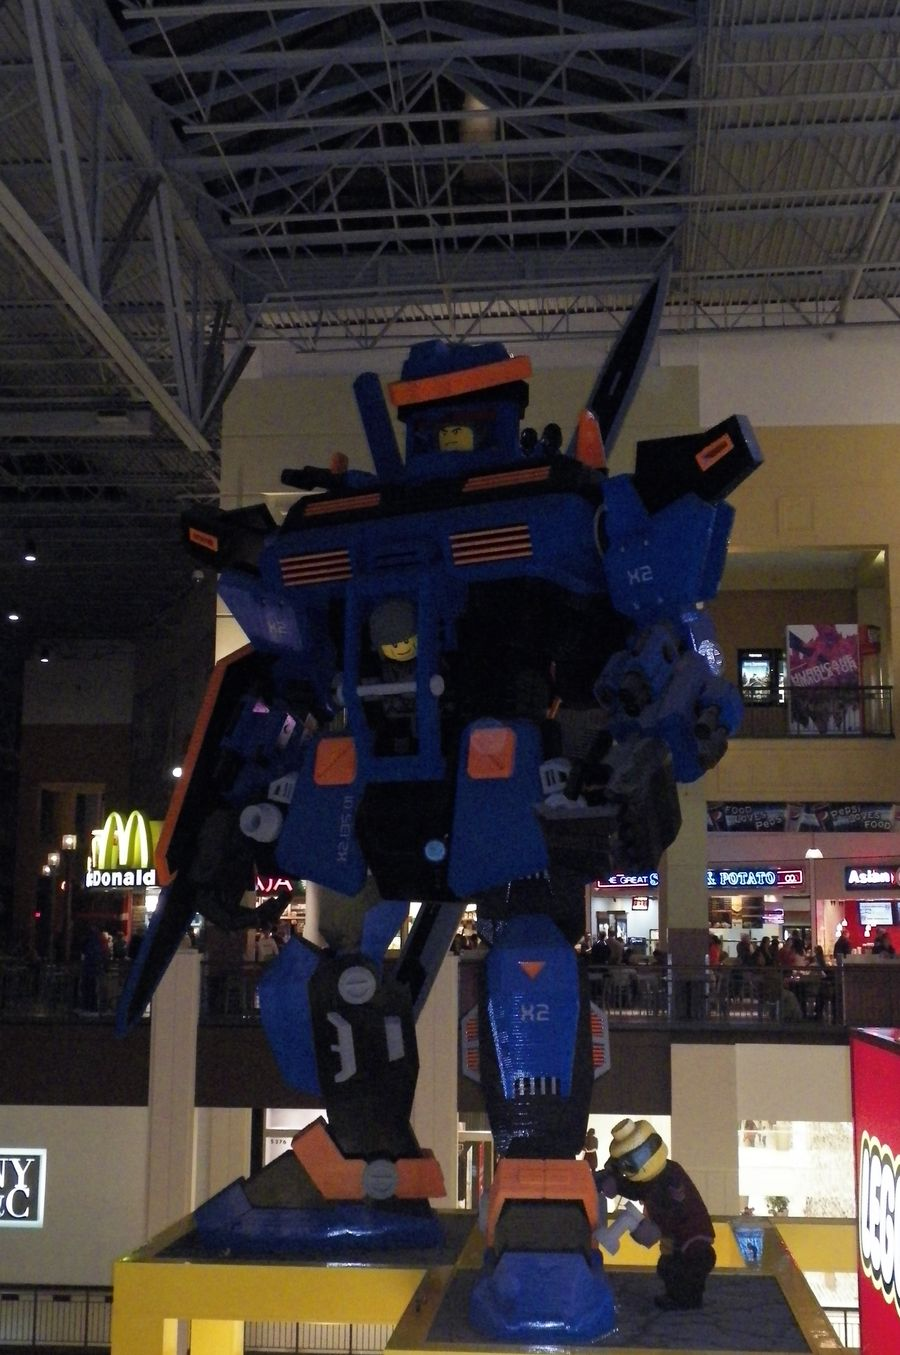 Huge AND made out of Legos!